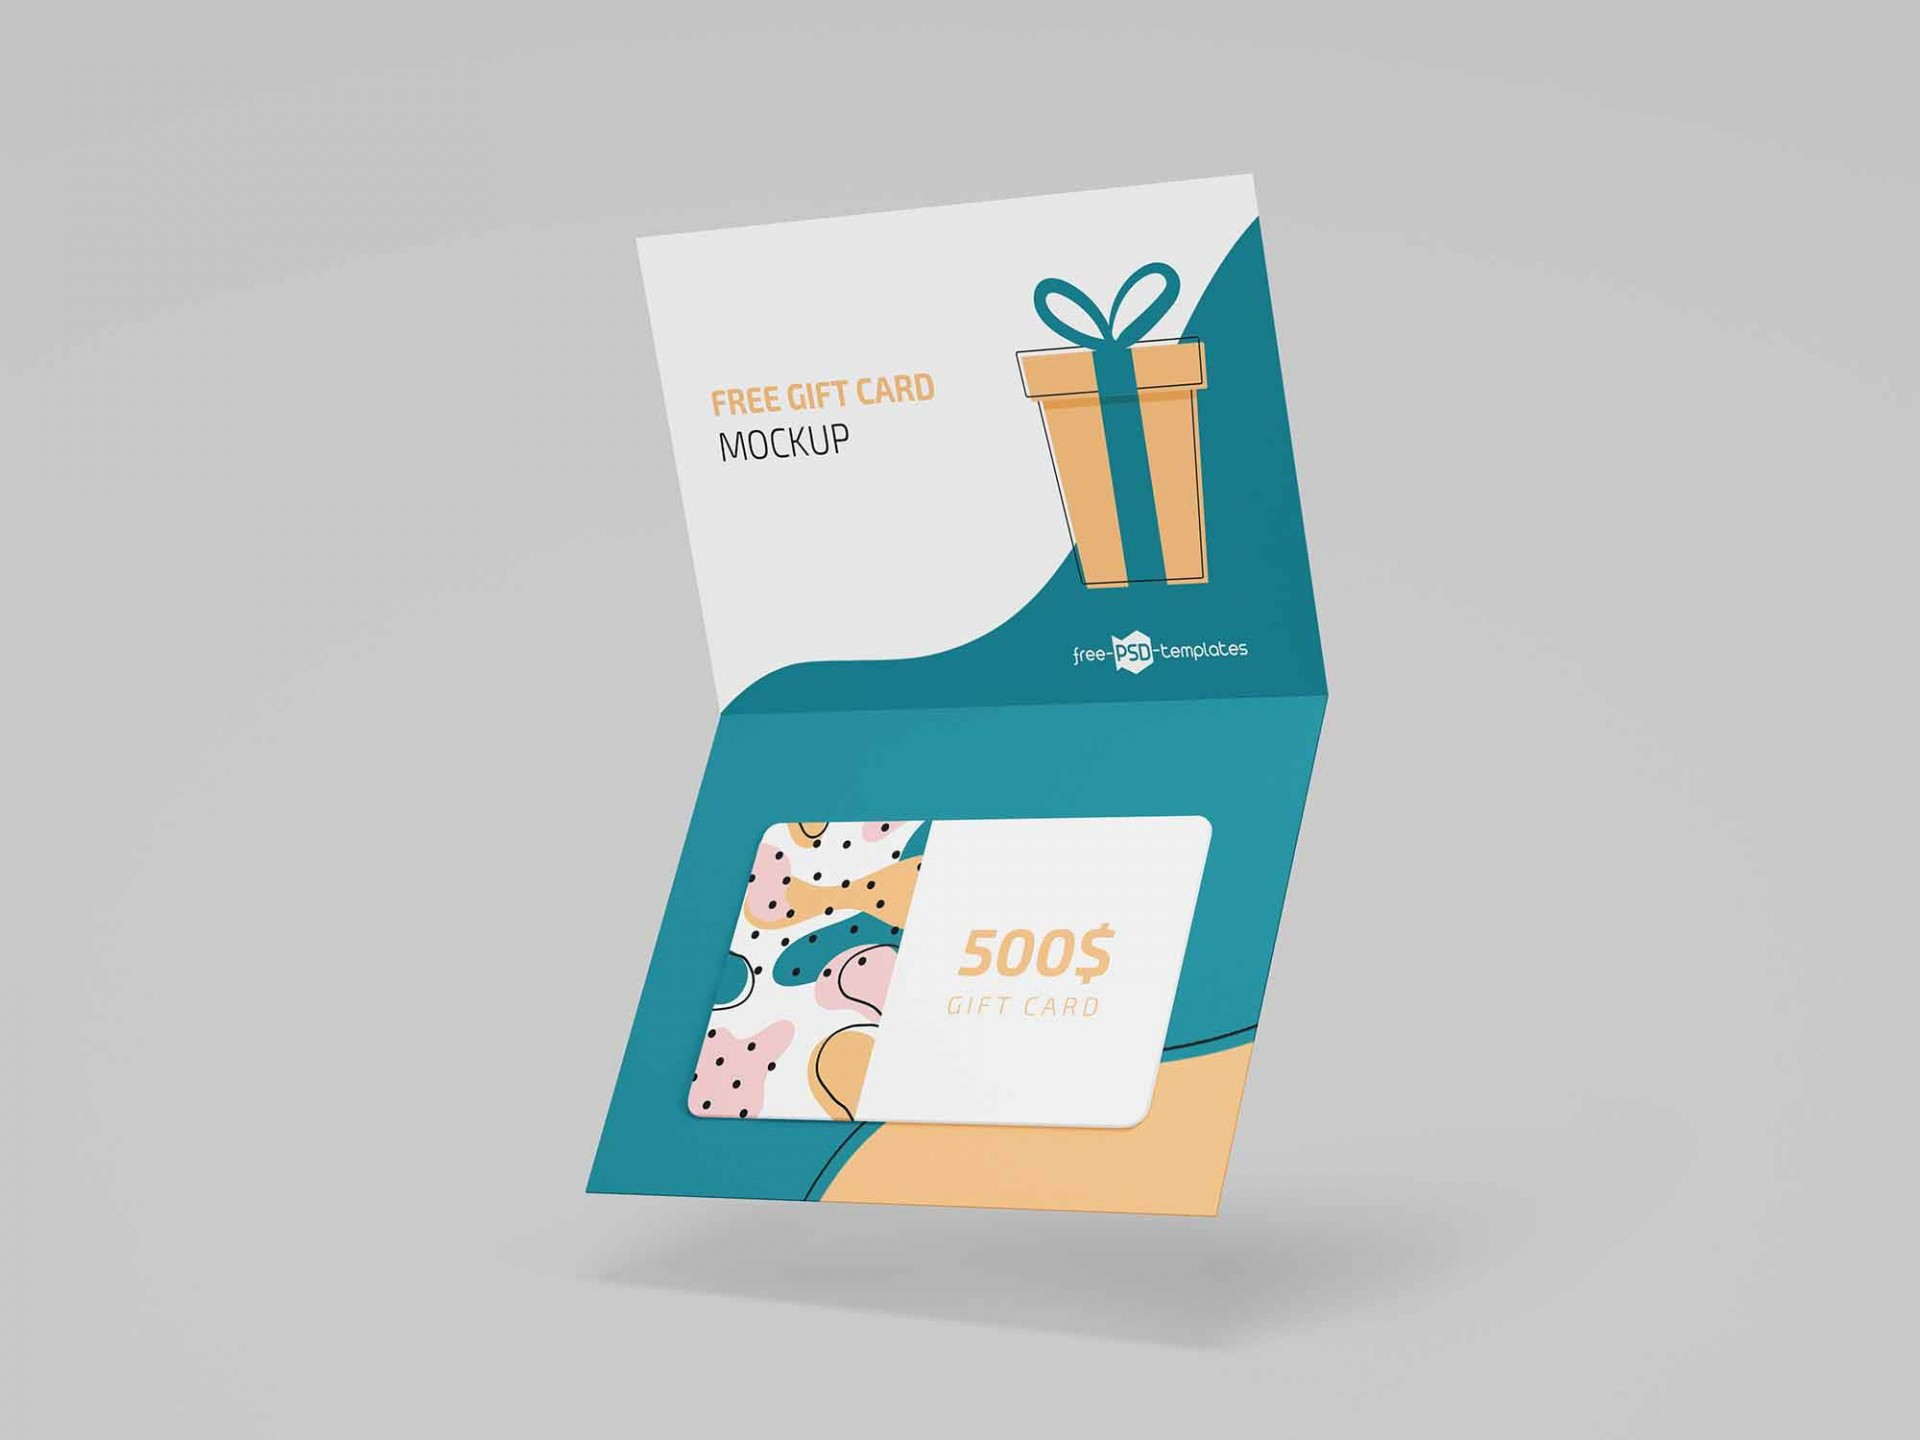 004 Formidable Gift Card Template Psd High Def  Christma Photoshop Free Holder1920